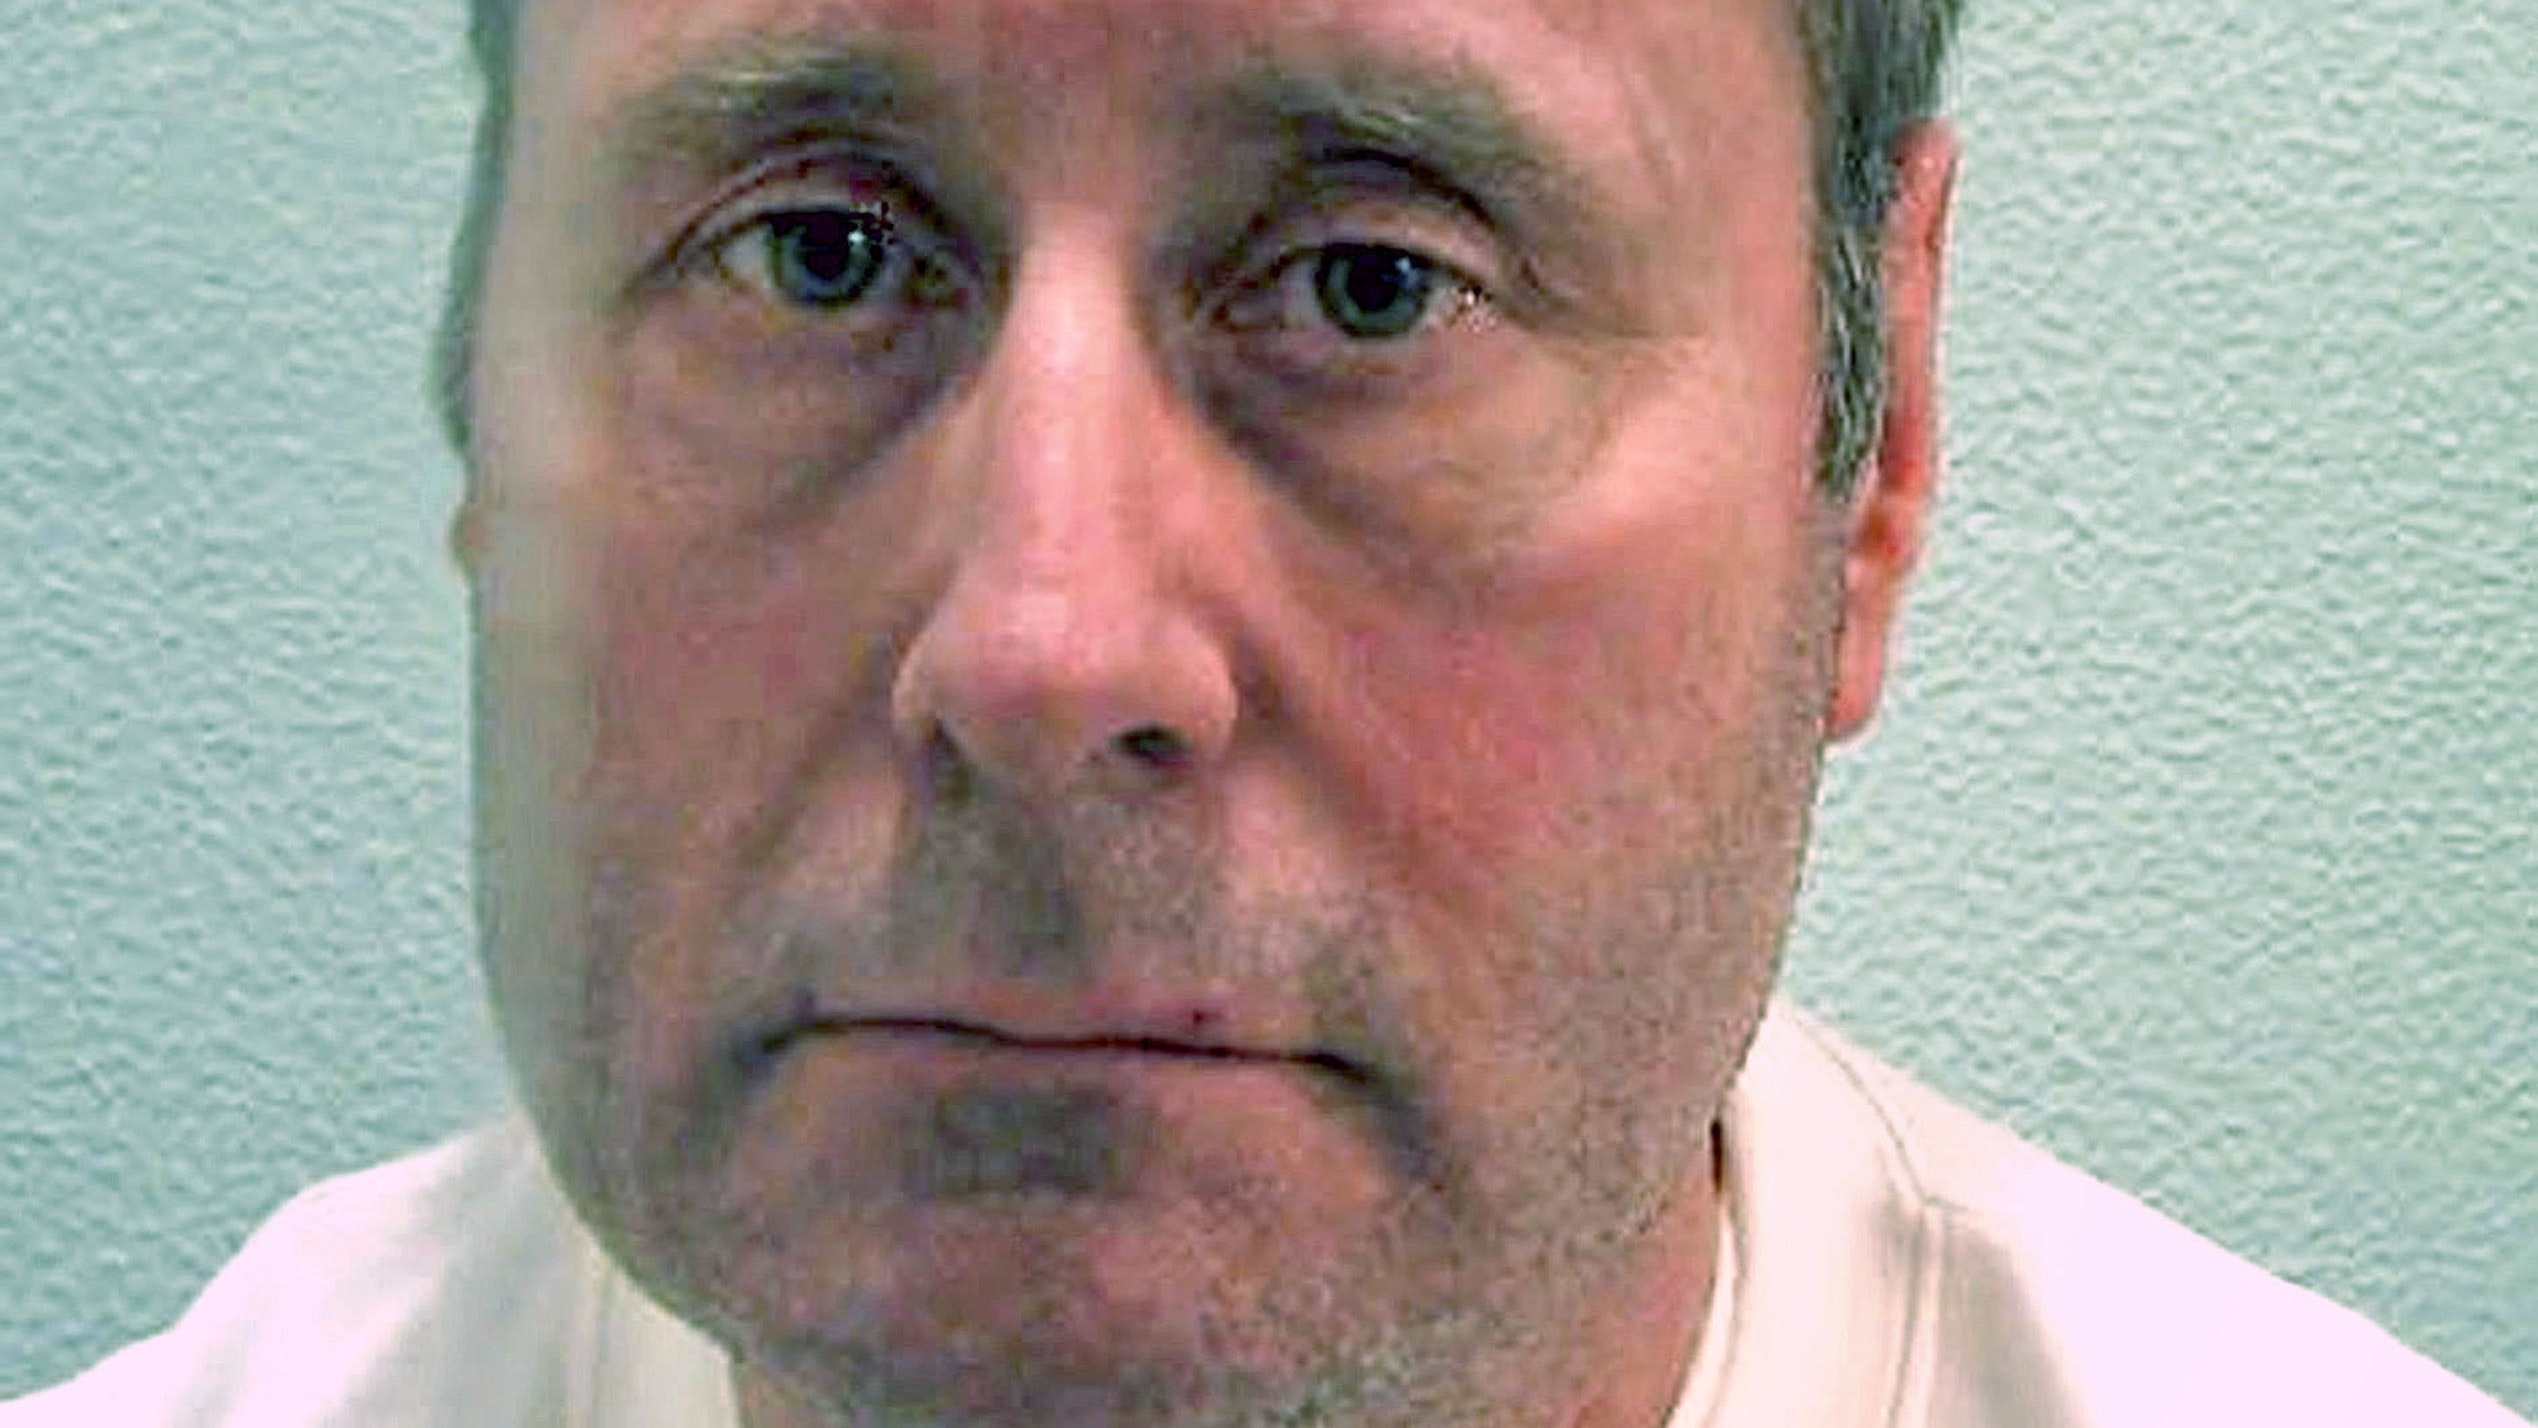 John Worboys: Met Police loses 'landmark' Supreme Court case